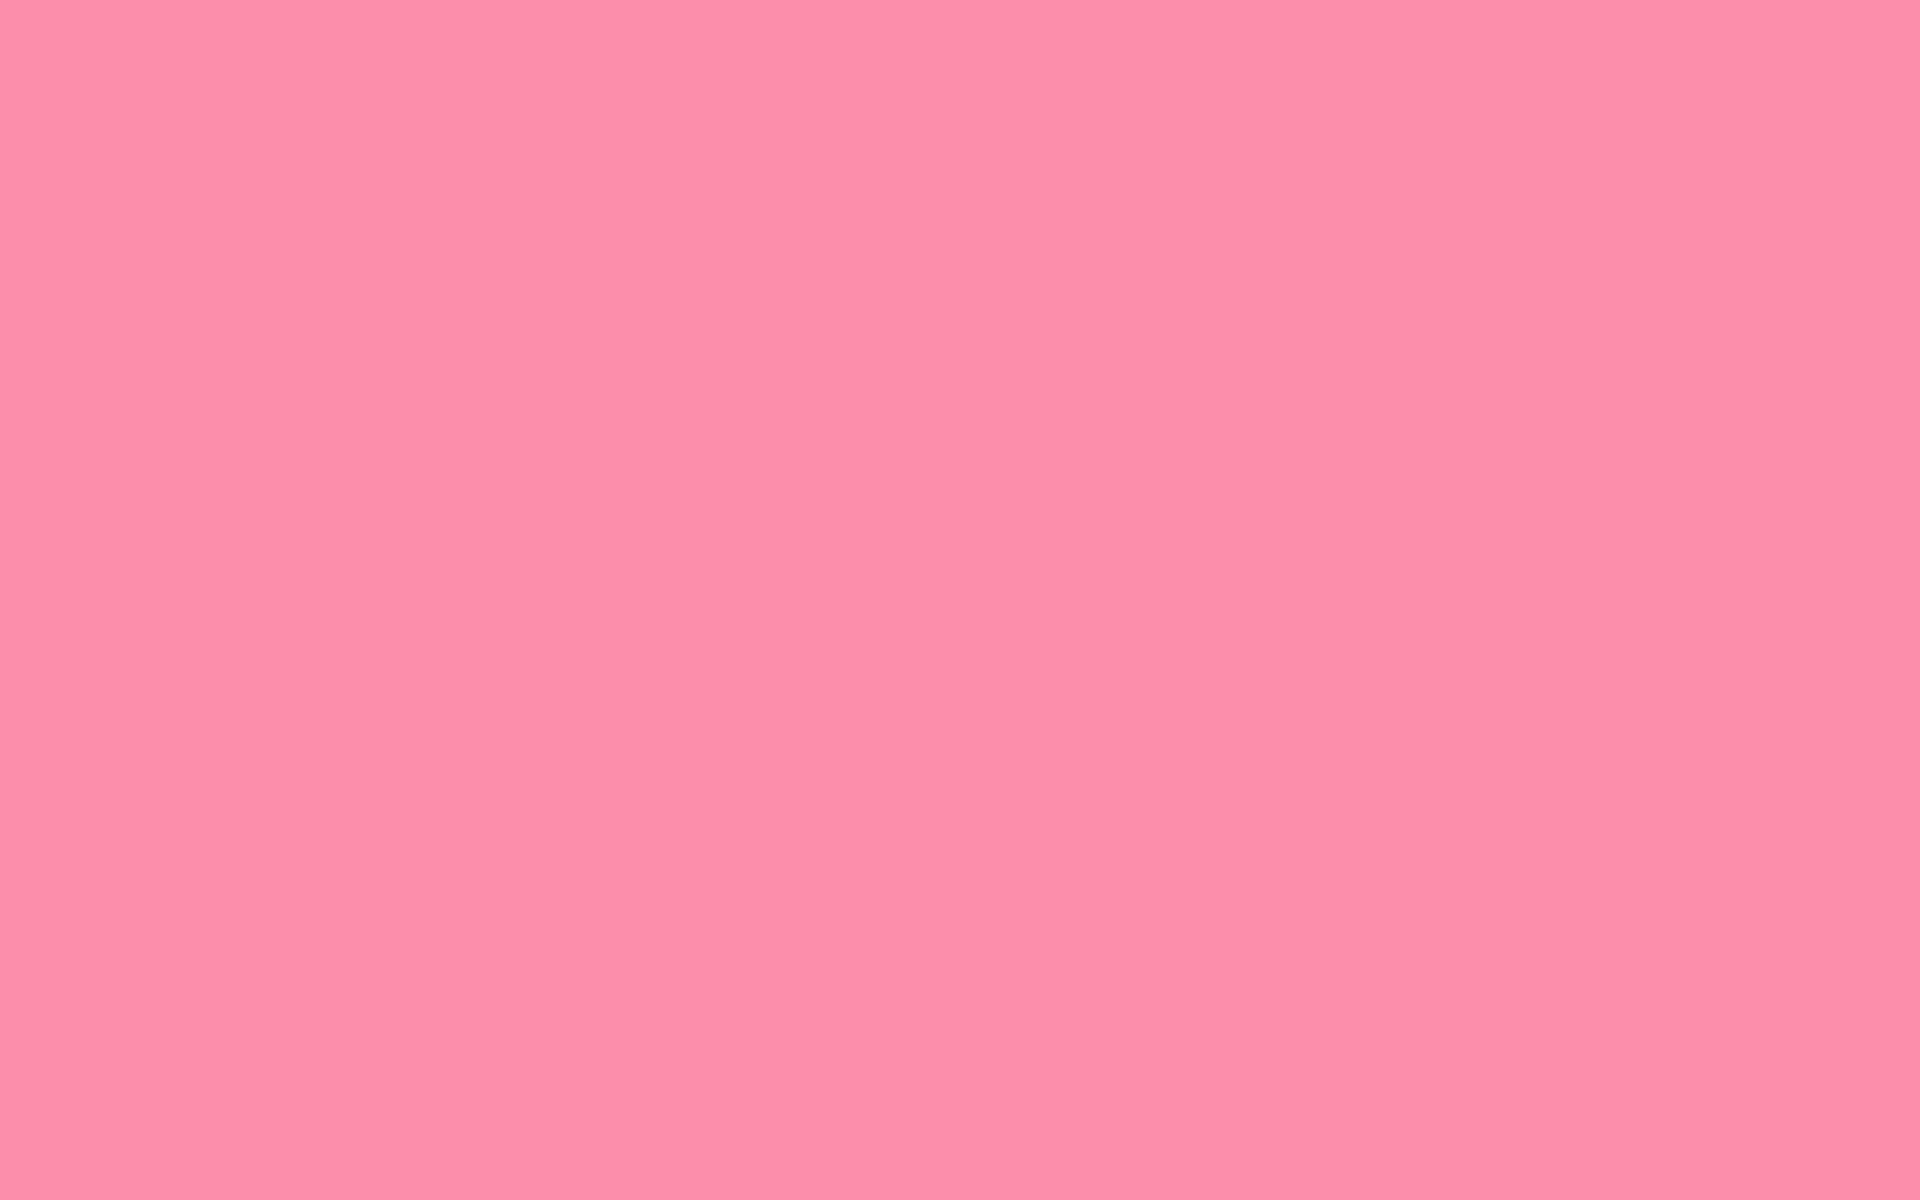 1920x1200 Flamingo Pink Solid Color Background